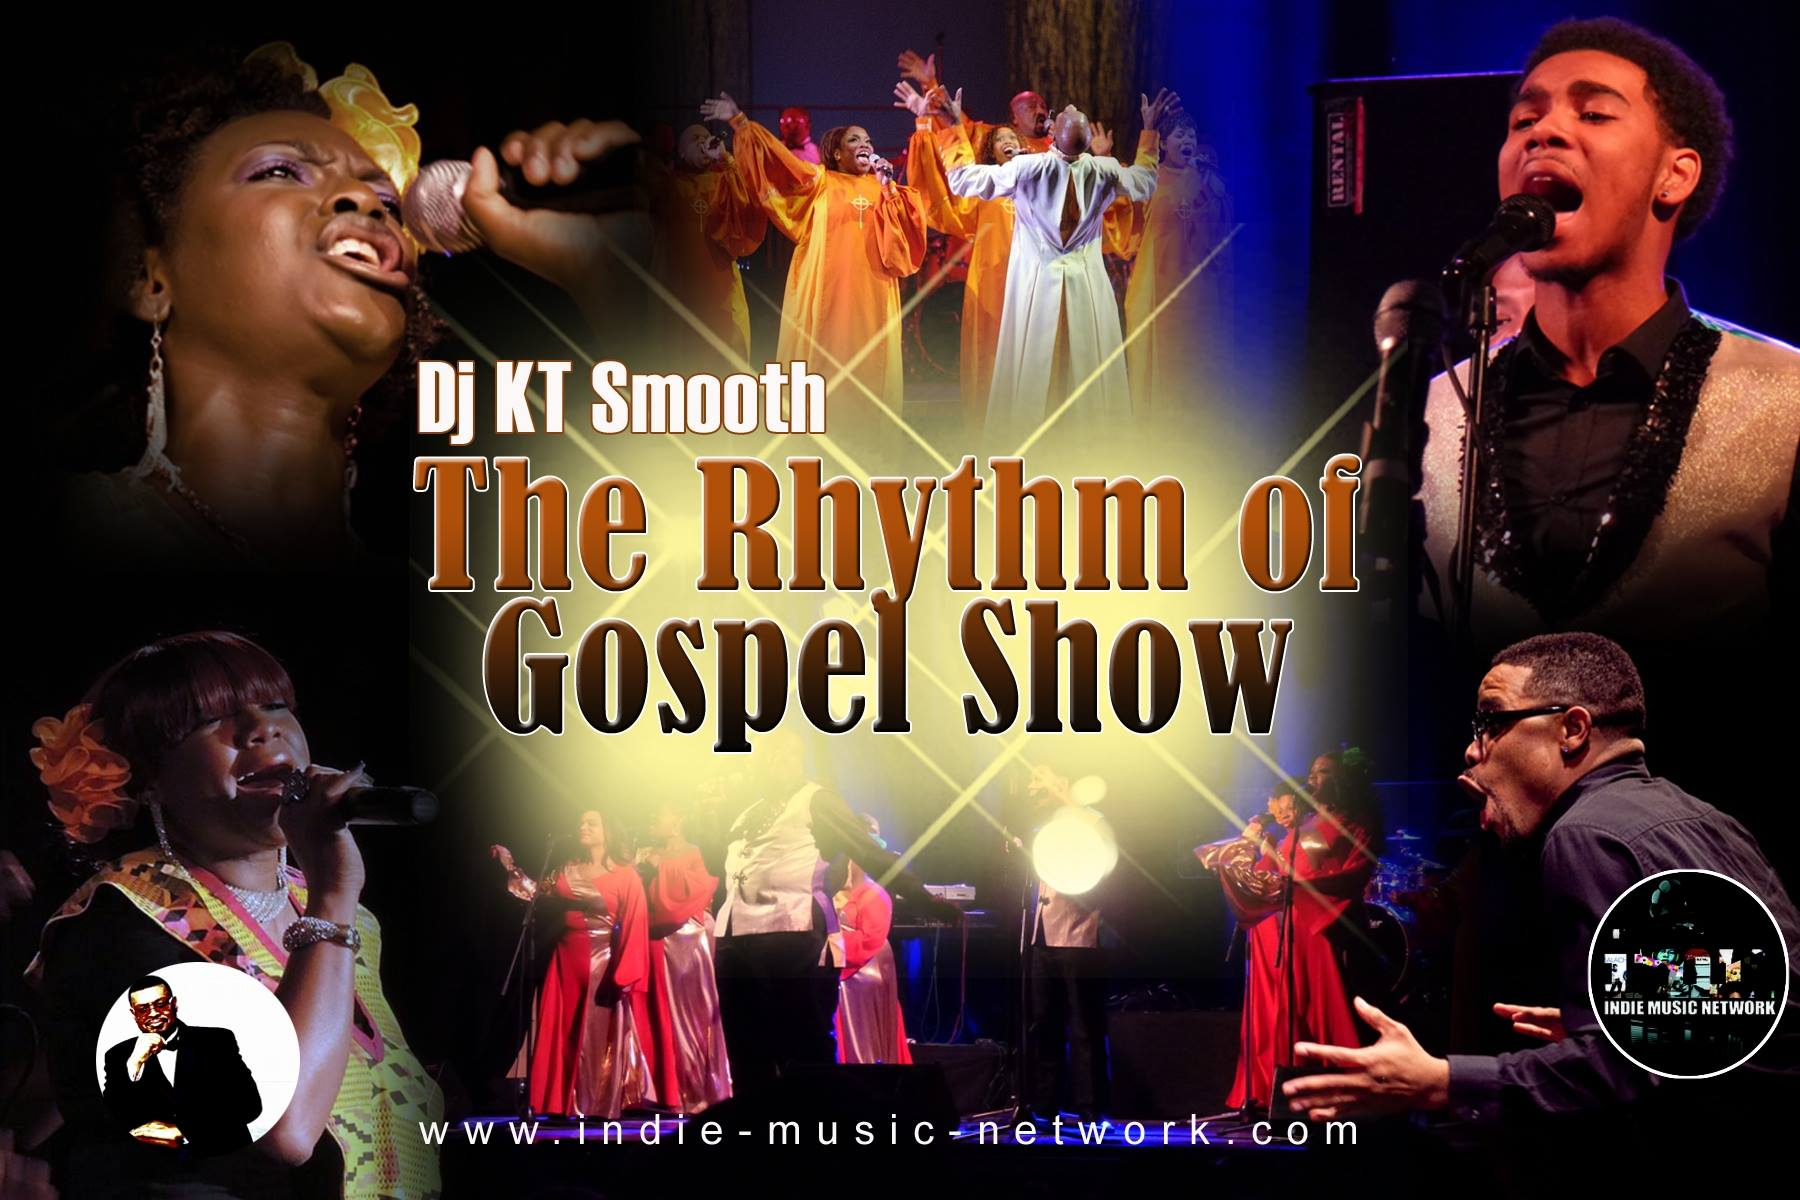 Rhythm of Gospel Show